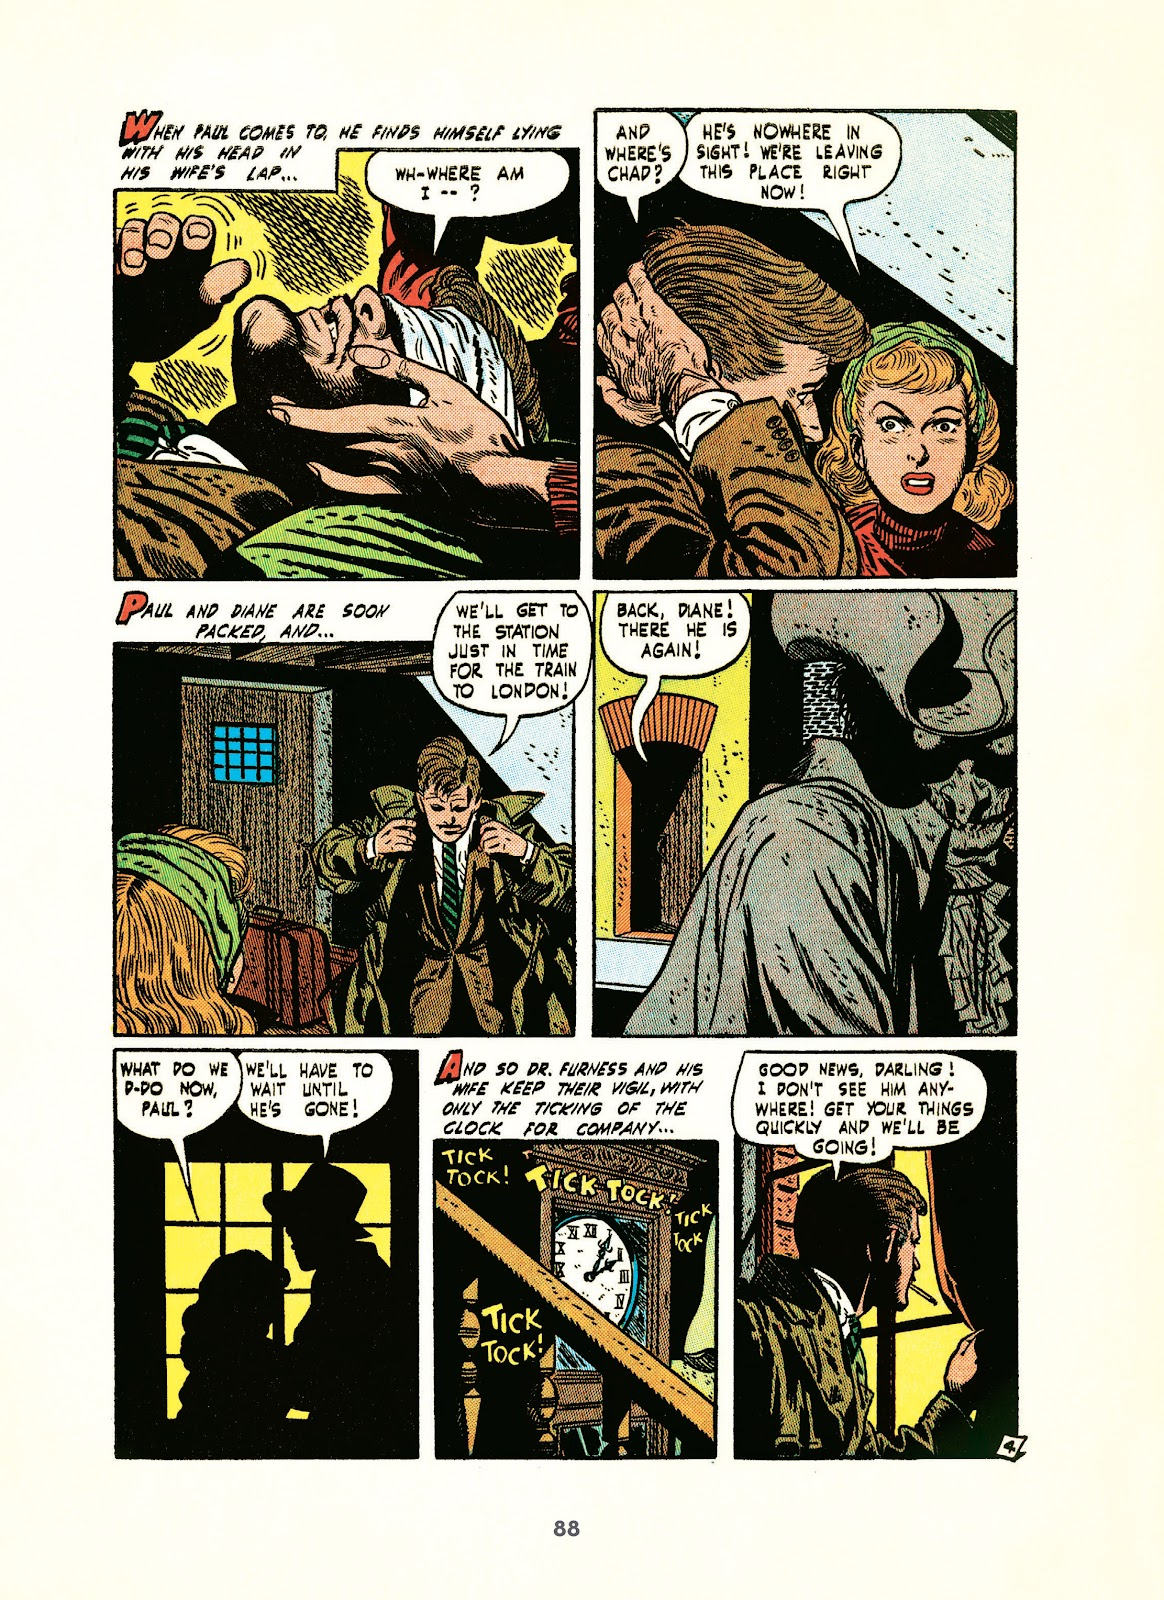 Read online Setting the Standard: Comics by Alex Toth 1952-1954 comic -  Issue # TPB (Part 1) - 87